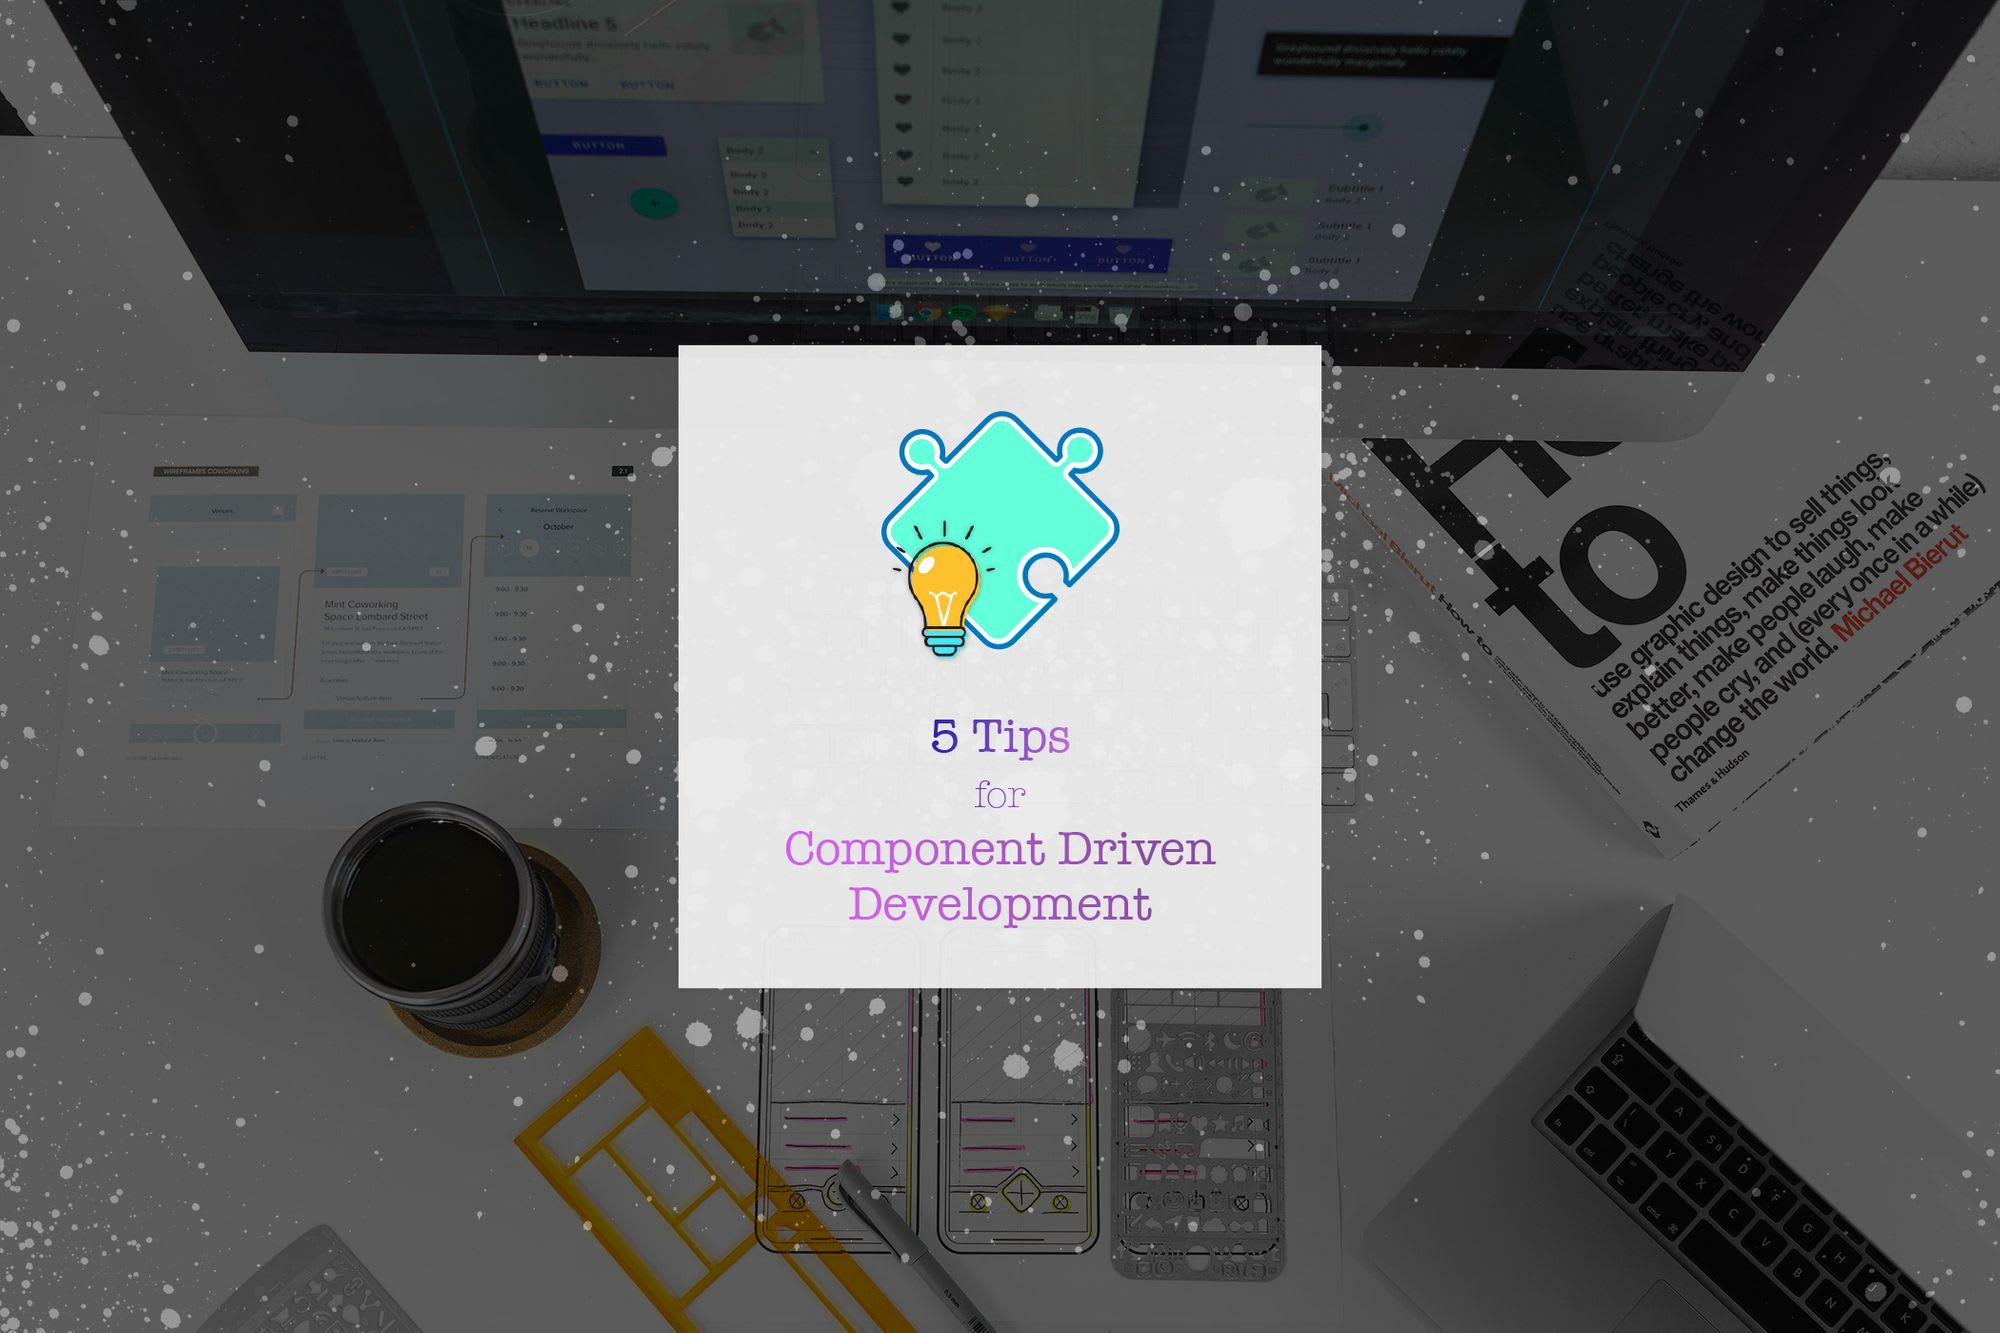 5 Tips for Component Driven Development